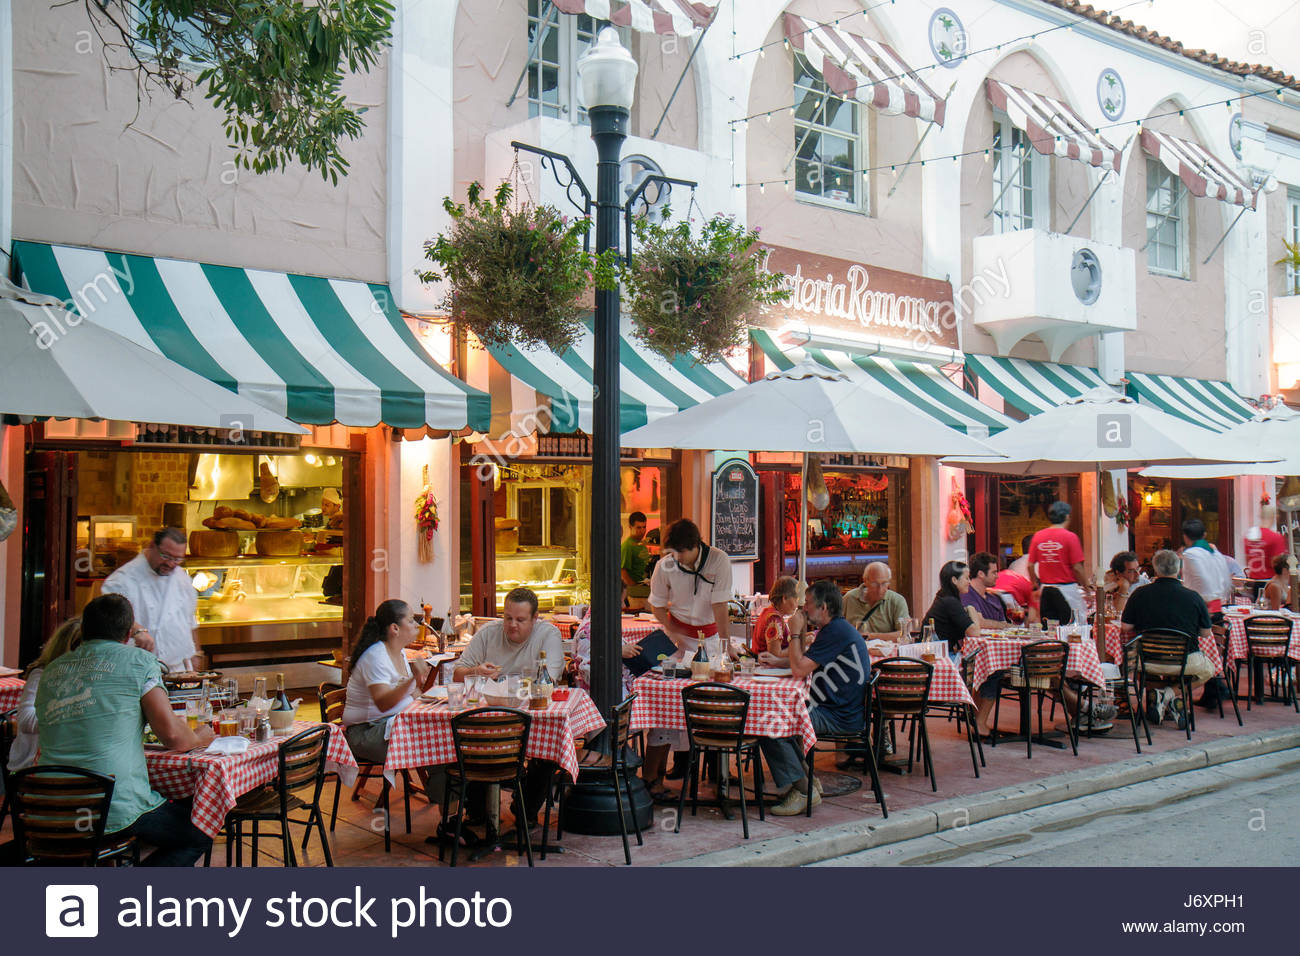 Piccola Cucina Miami Beach Restaurants On Espanola Way South Stock Photos Restaurants On